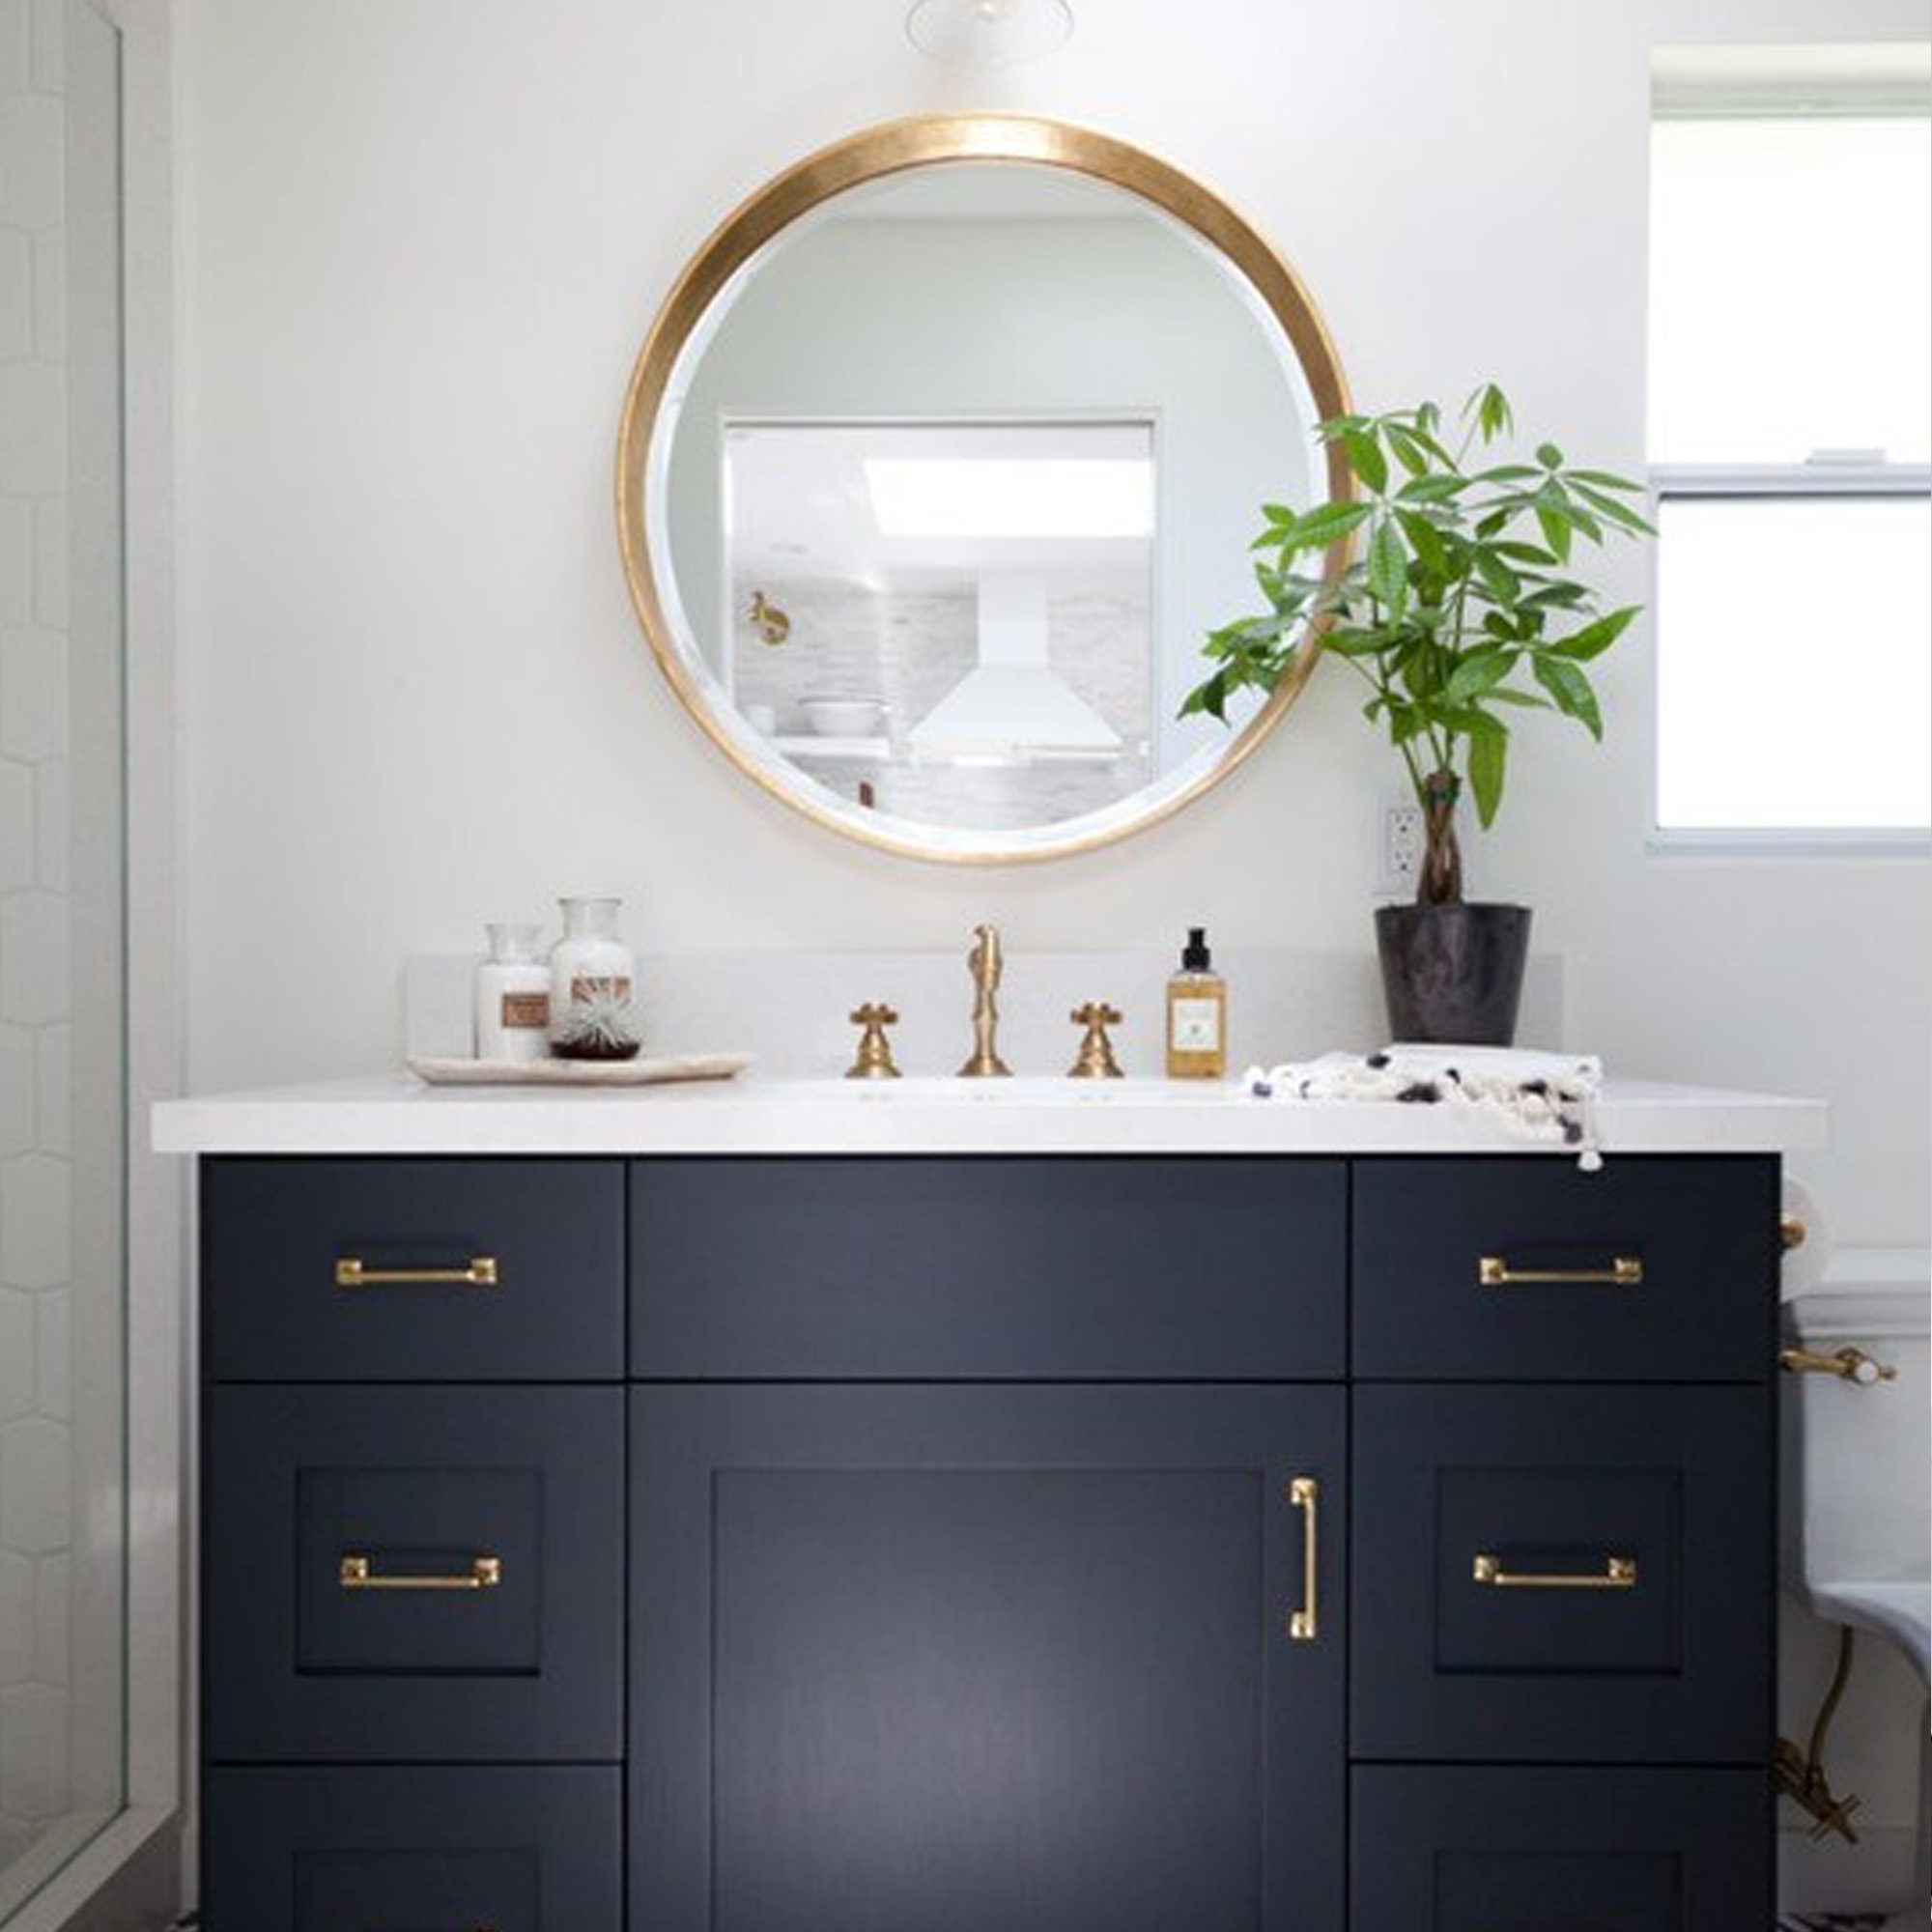 How High To Place Your Bathroom Fixtures Inspired To Style Interiors Inside Ideas Interiors design about Everything [magnanprojects.com]